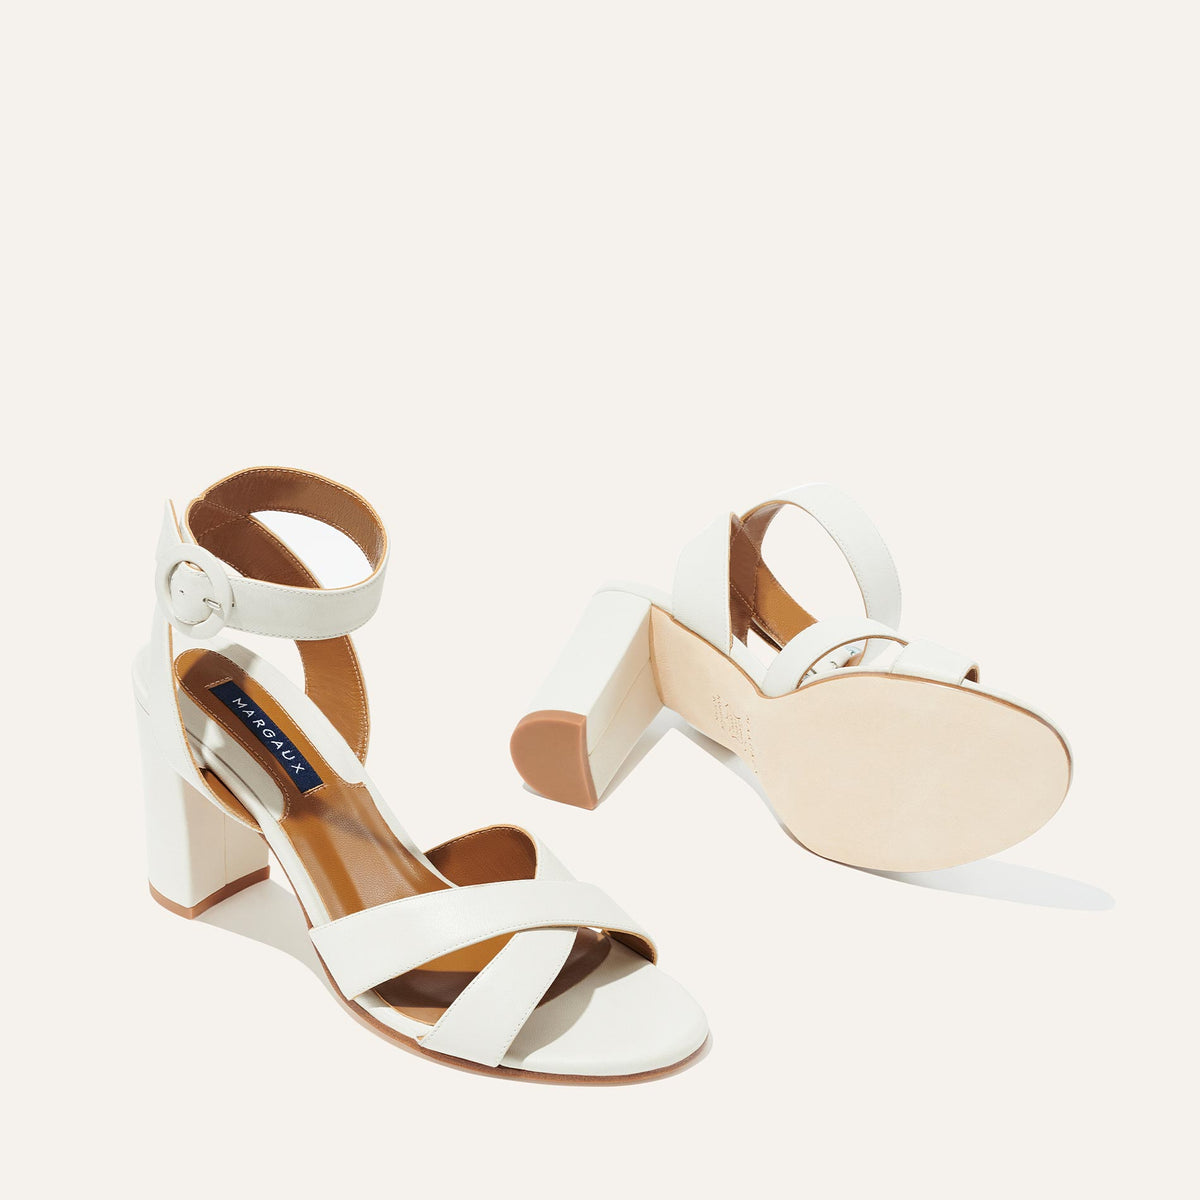 The Uptown Sandal in Ivory